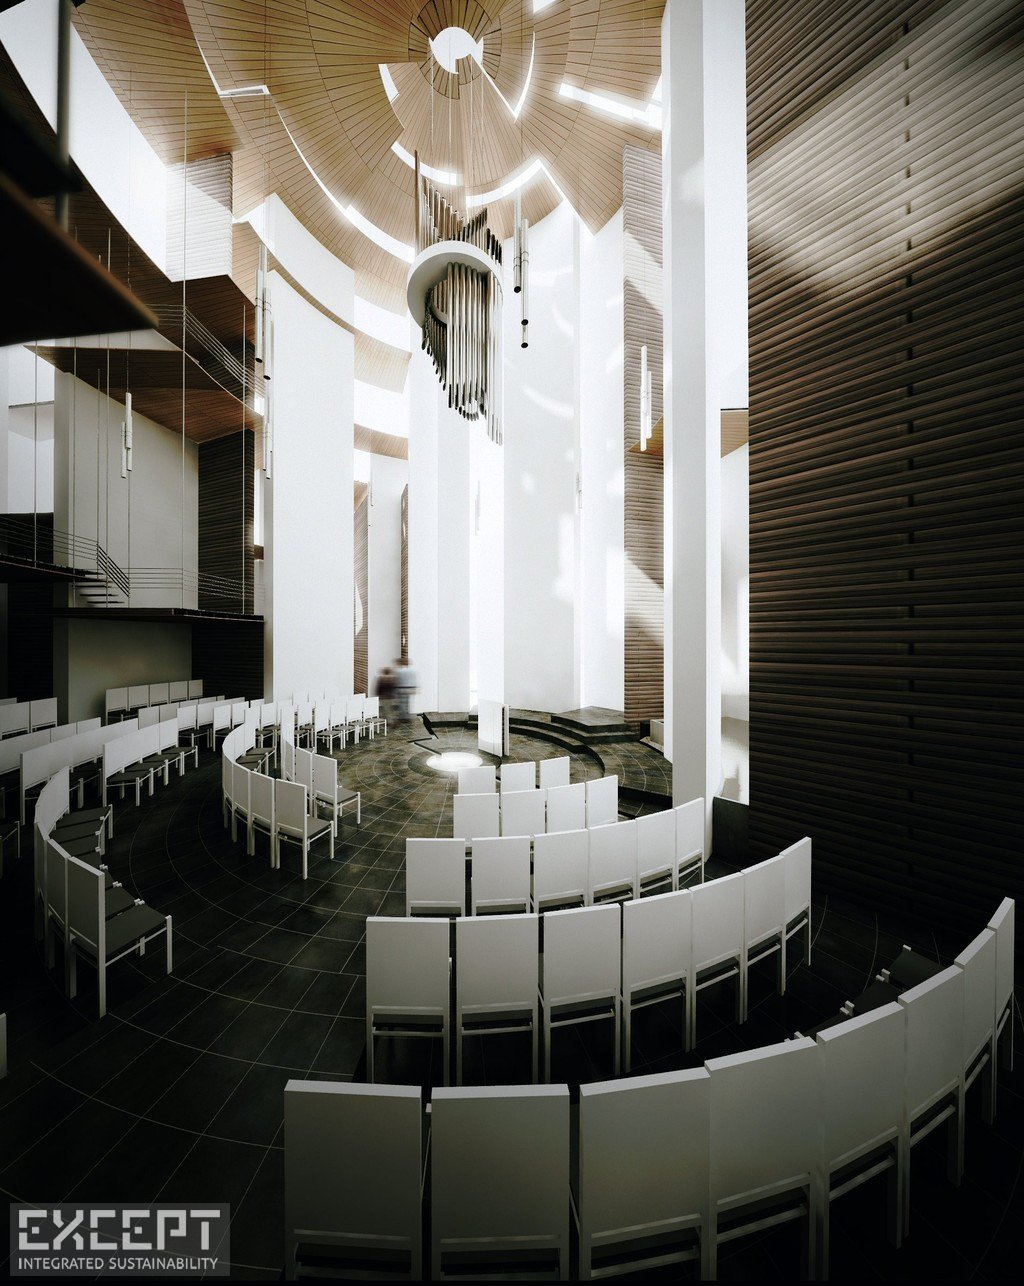 Chapel Interior - The central chapel's space brings a reverential experience to visitors.